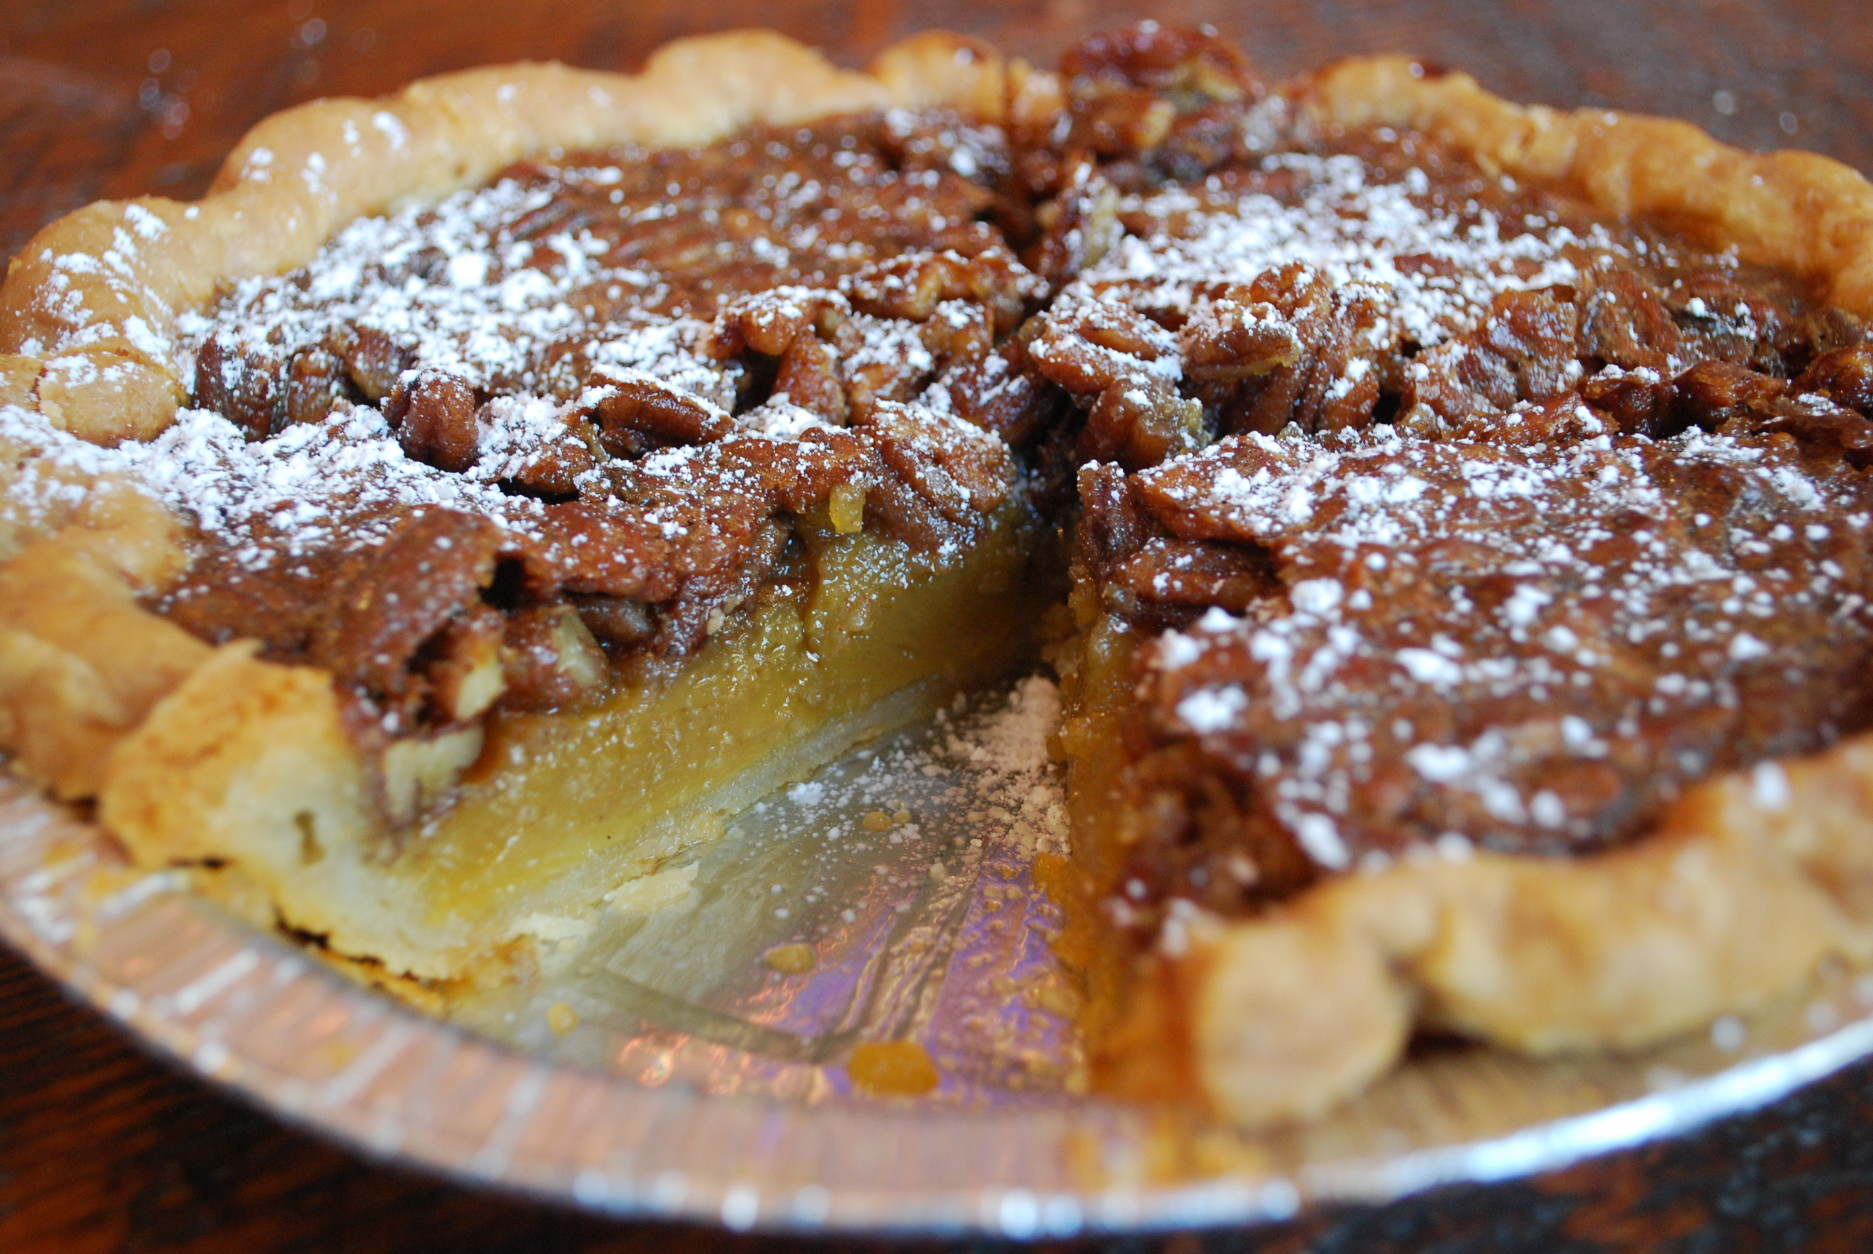 Don't let dessert be an afterthought. With a few ingredients and a little advanced planning, you can turn out a delicious homemade pie that tastes like it came from one of the best in the business. (Courtesy Bayou Bakery)